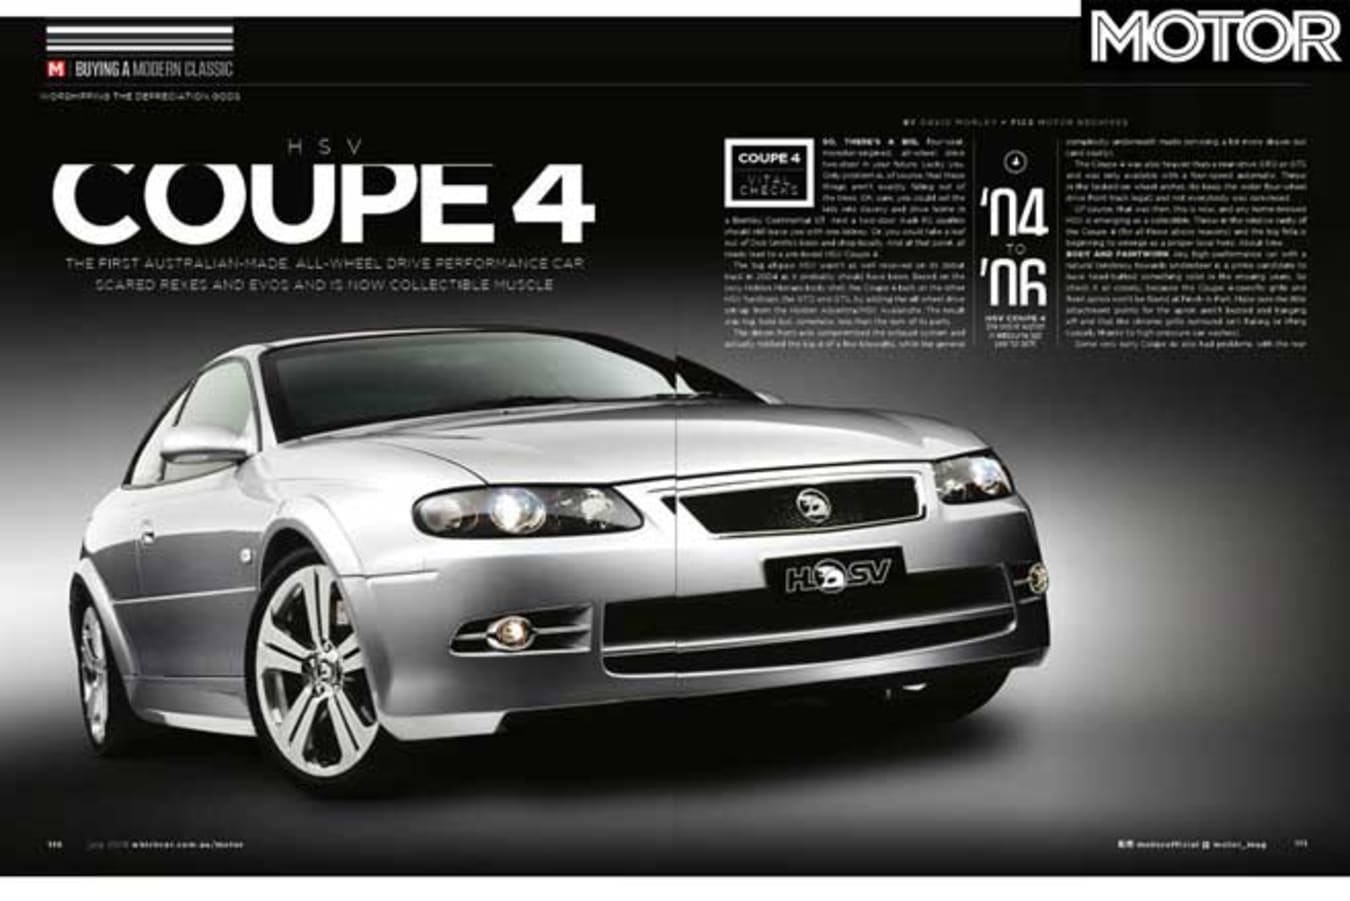 MOTOR Magazine July 2019 Issue HSV Coupe 4 Buyers Guide Jpg